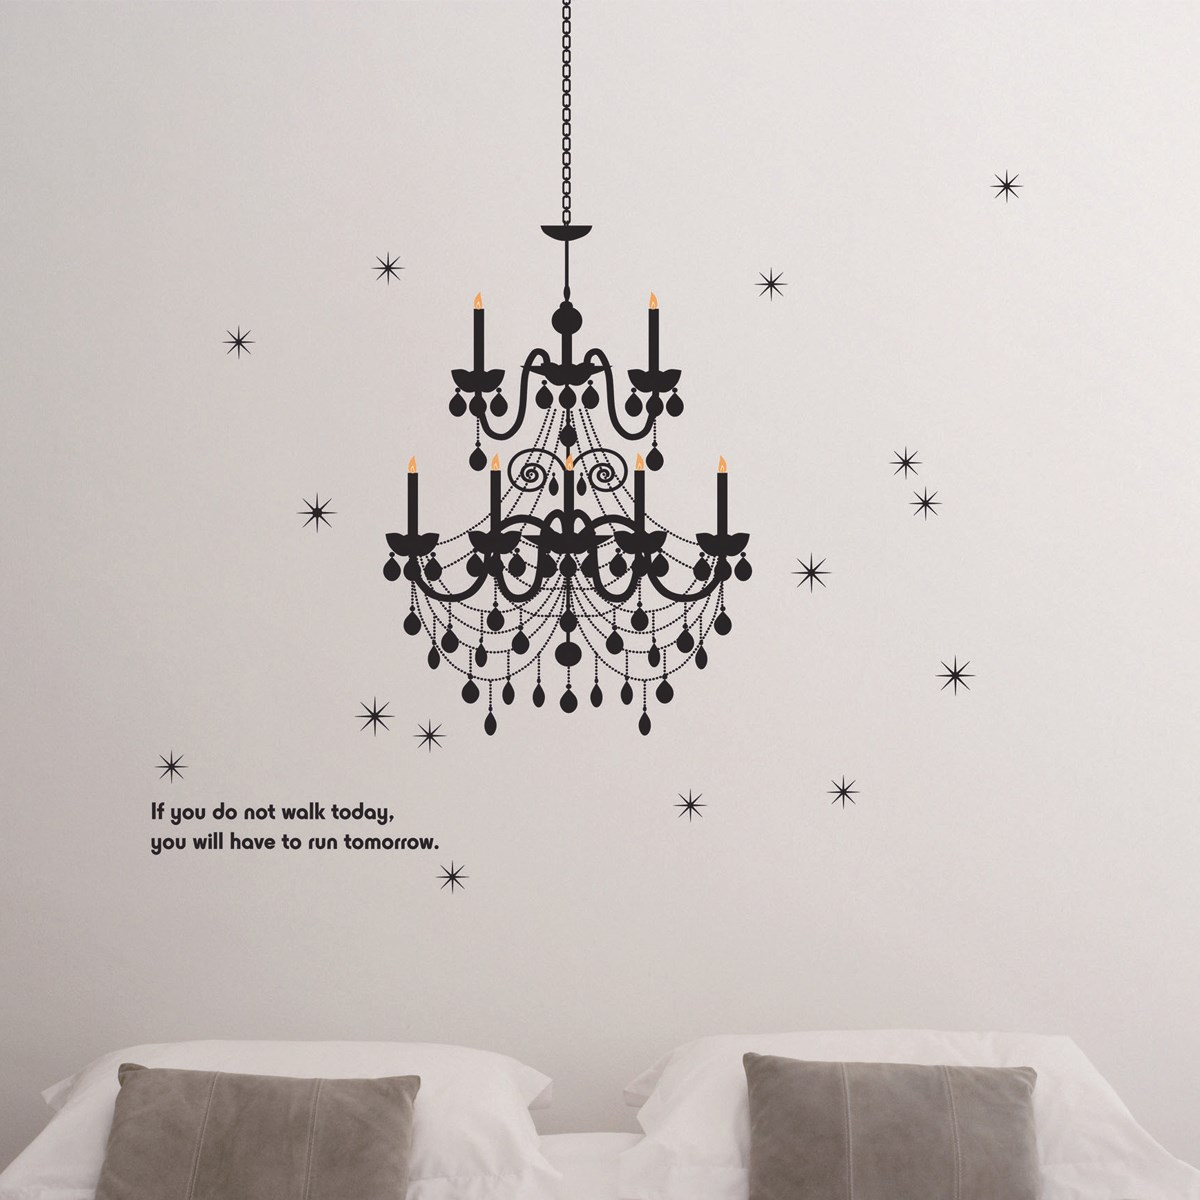 Black Cozy Droplight Stars Wall Stickers PVC Removable DIY Home Art Decor Decal Bedroom Living Room Poster